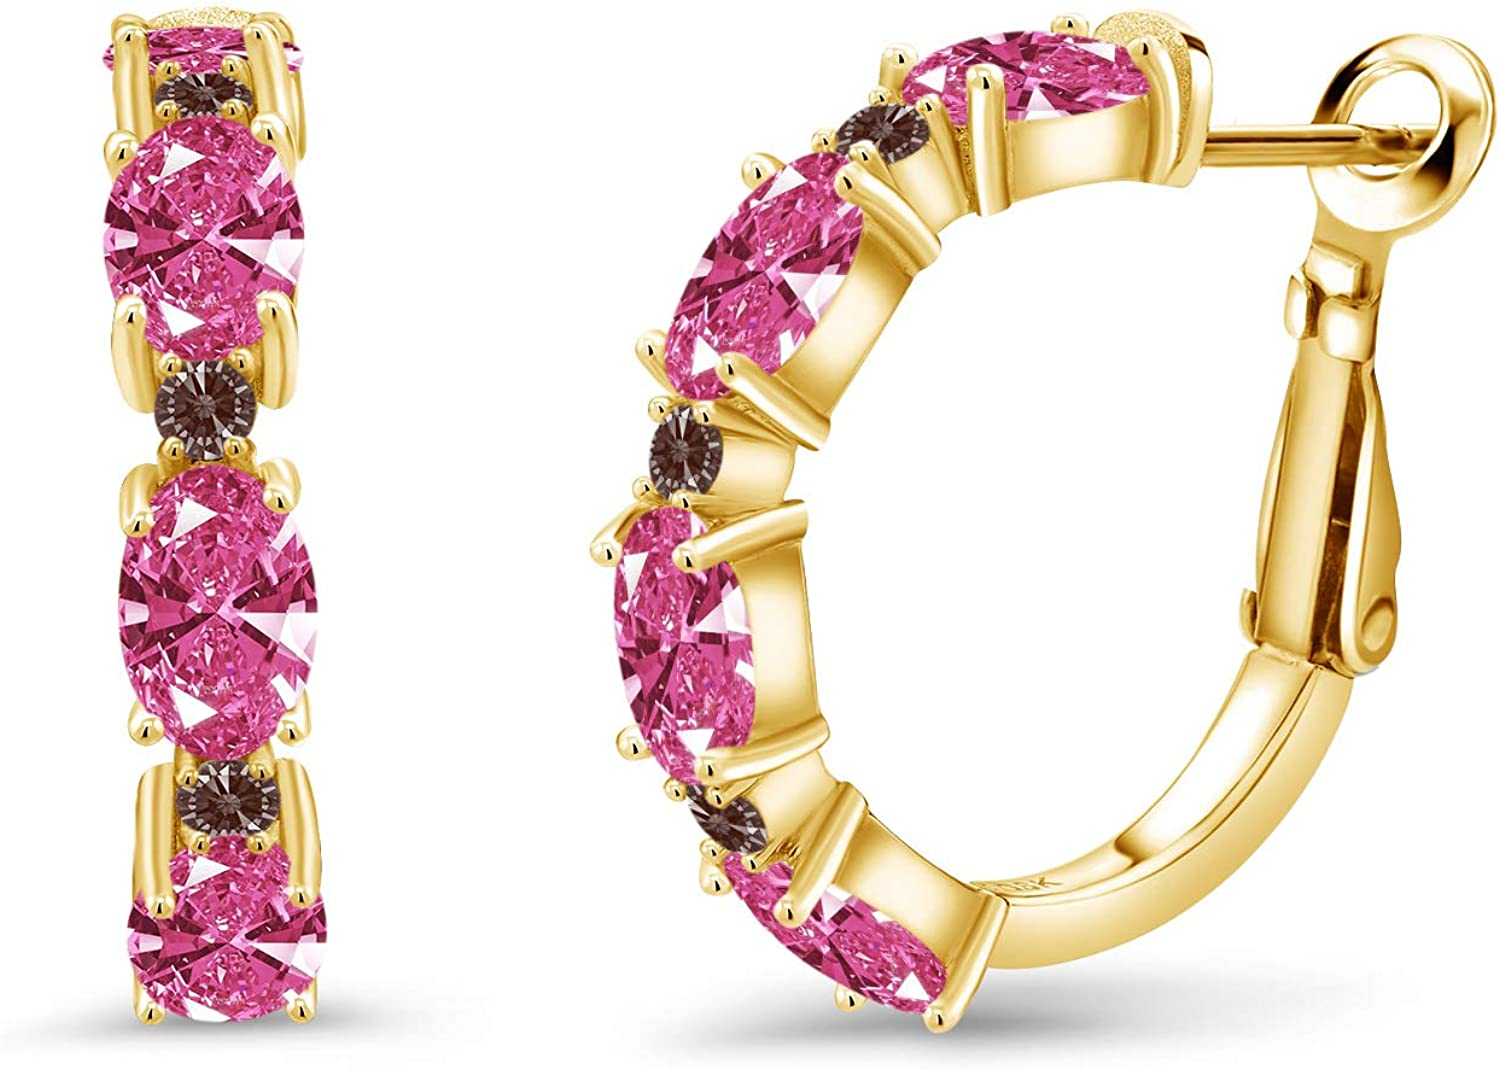 Gem Stone Branded goods King 18K Yellow Gold Plated Silver 6x4mm Earrings Hoop Outlet SALE